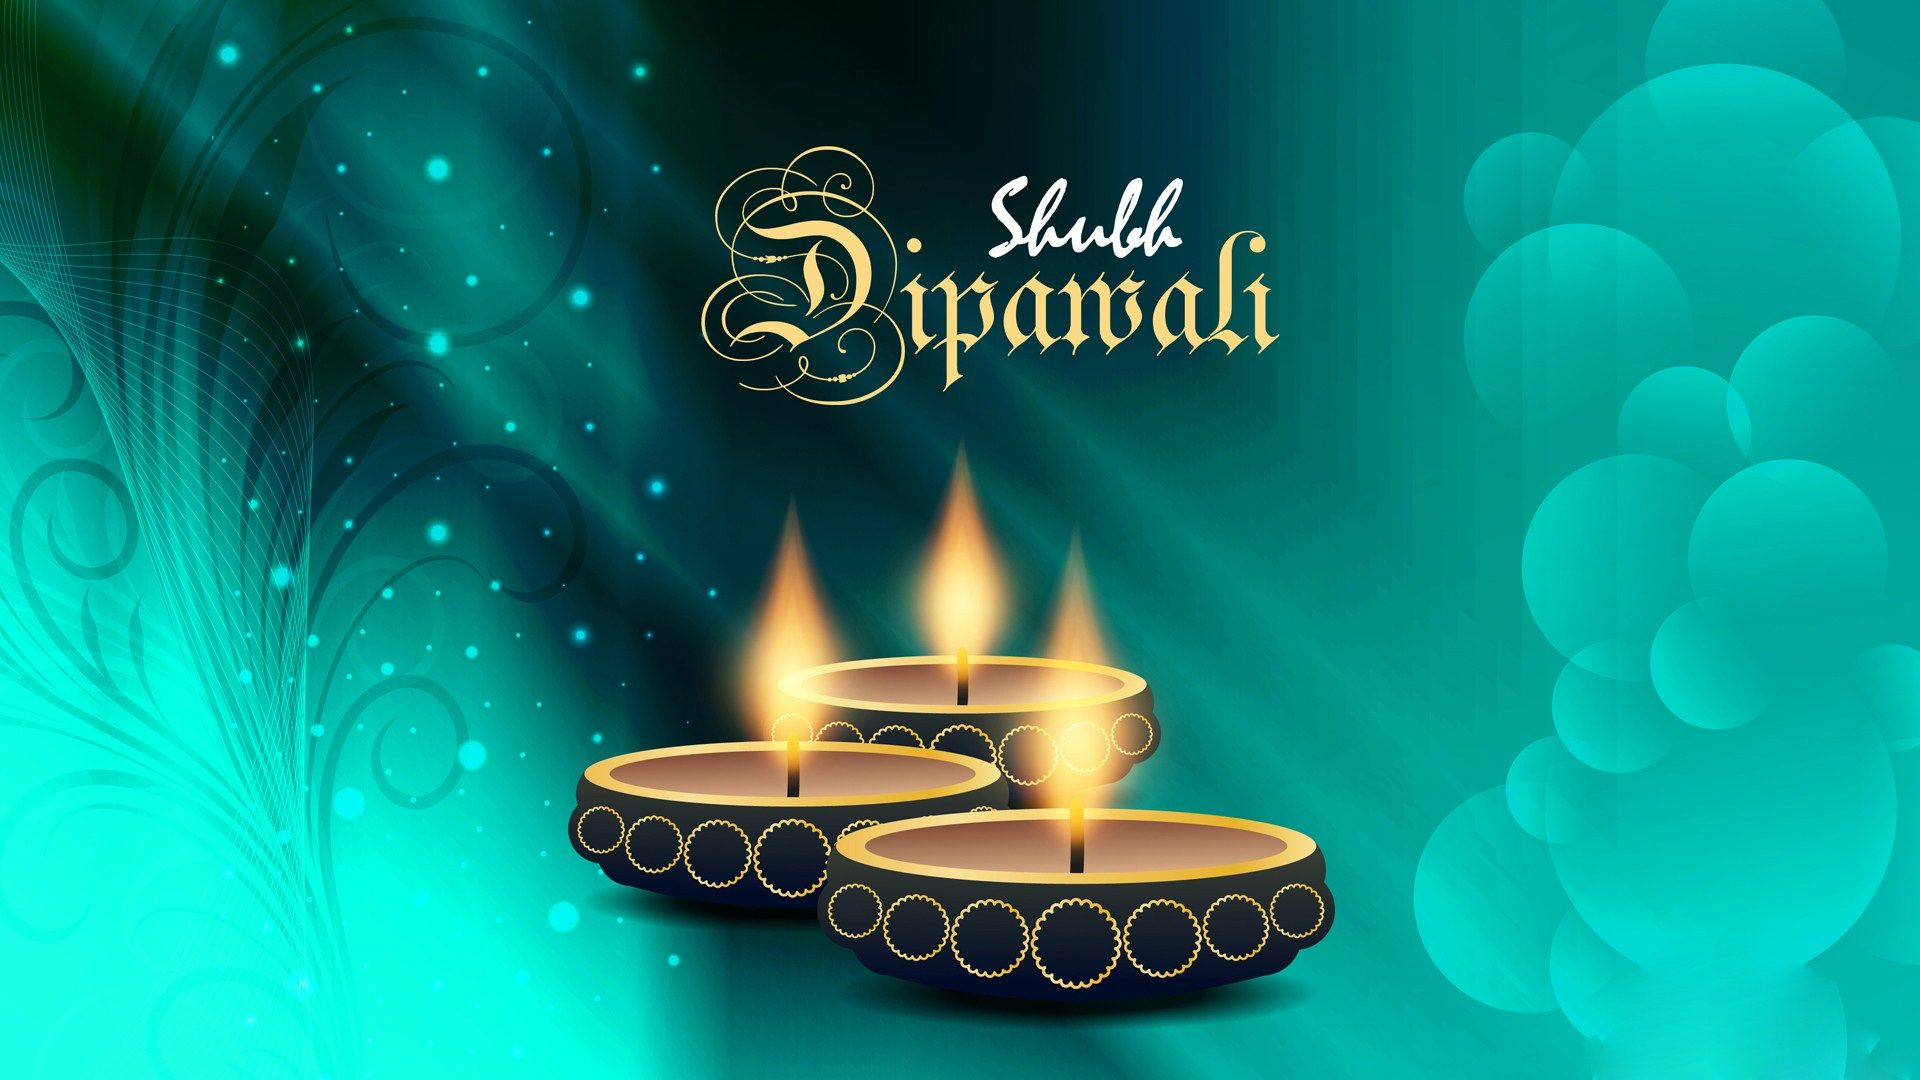 Diwali images for desktops hd diwali 2016 pinterest diwali images happy diwali 2016 shayari wishes sms greetings quotes in hindi with pictures cards festival sayings images heart touching poems funny deepawali messages m4hsunfo